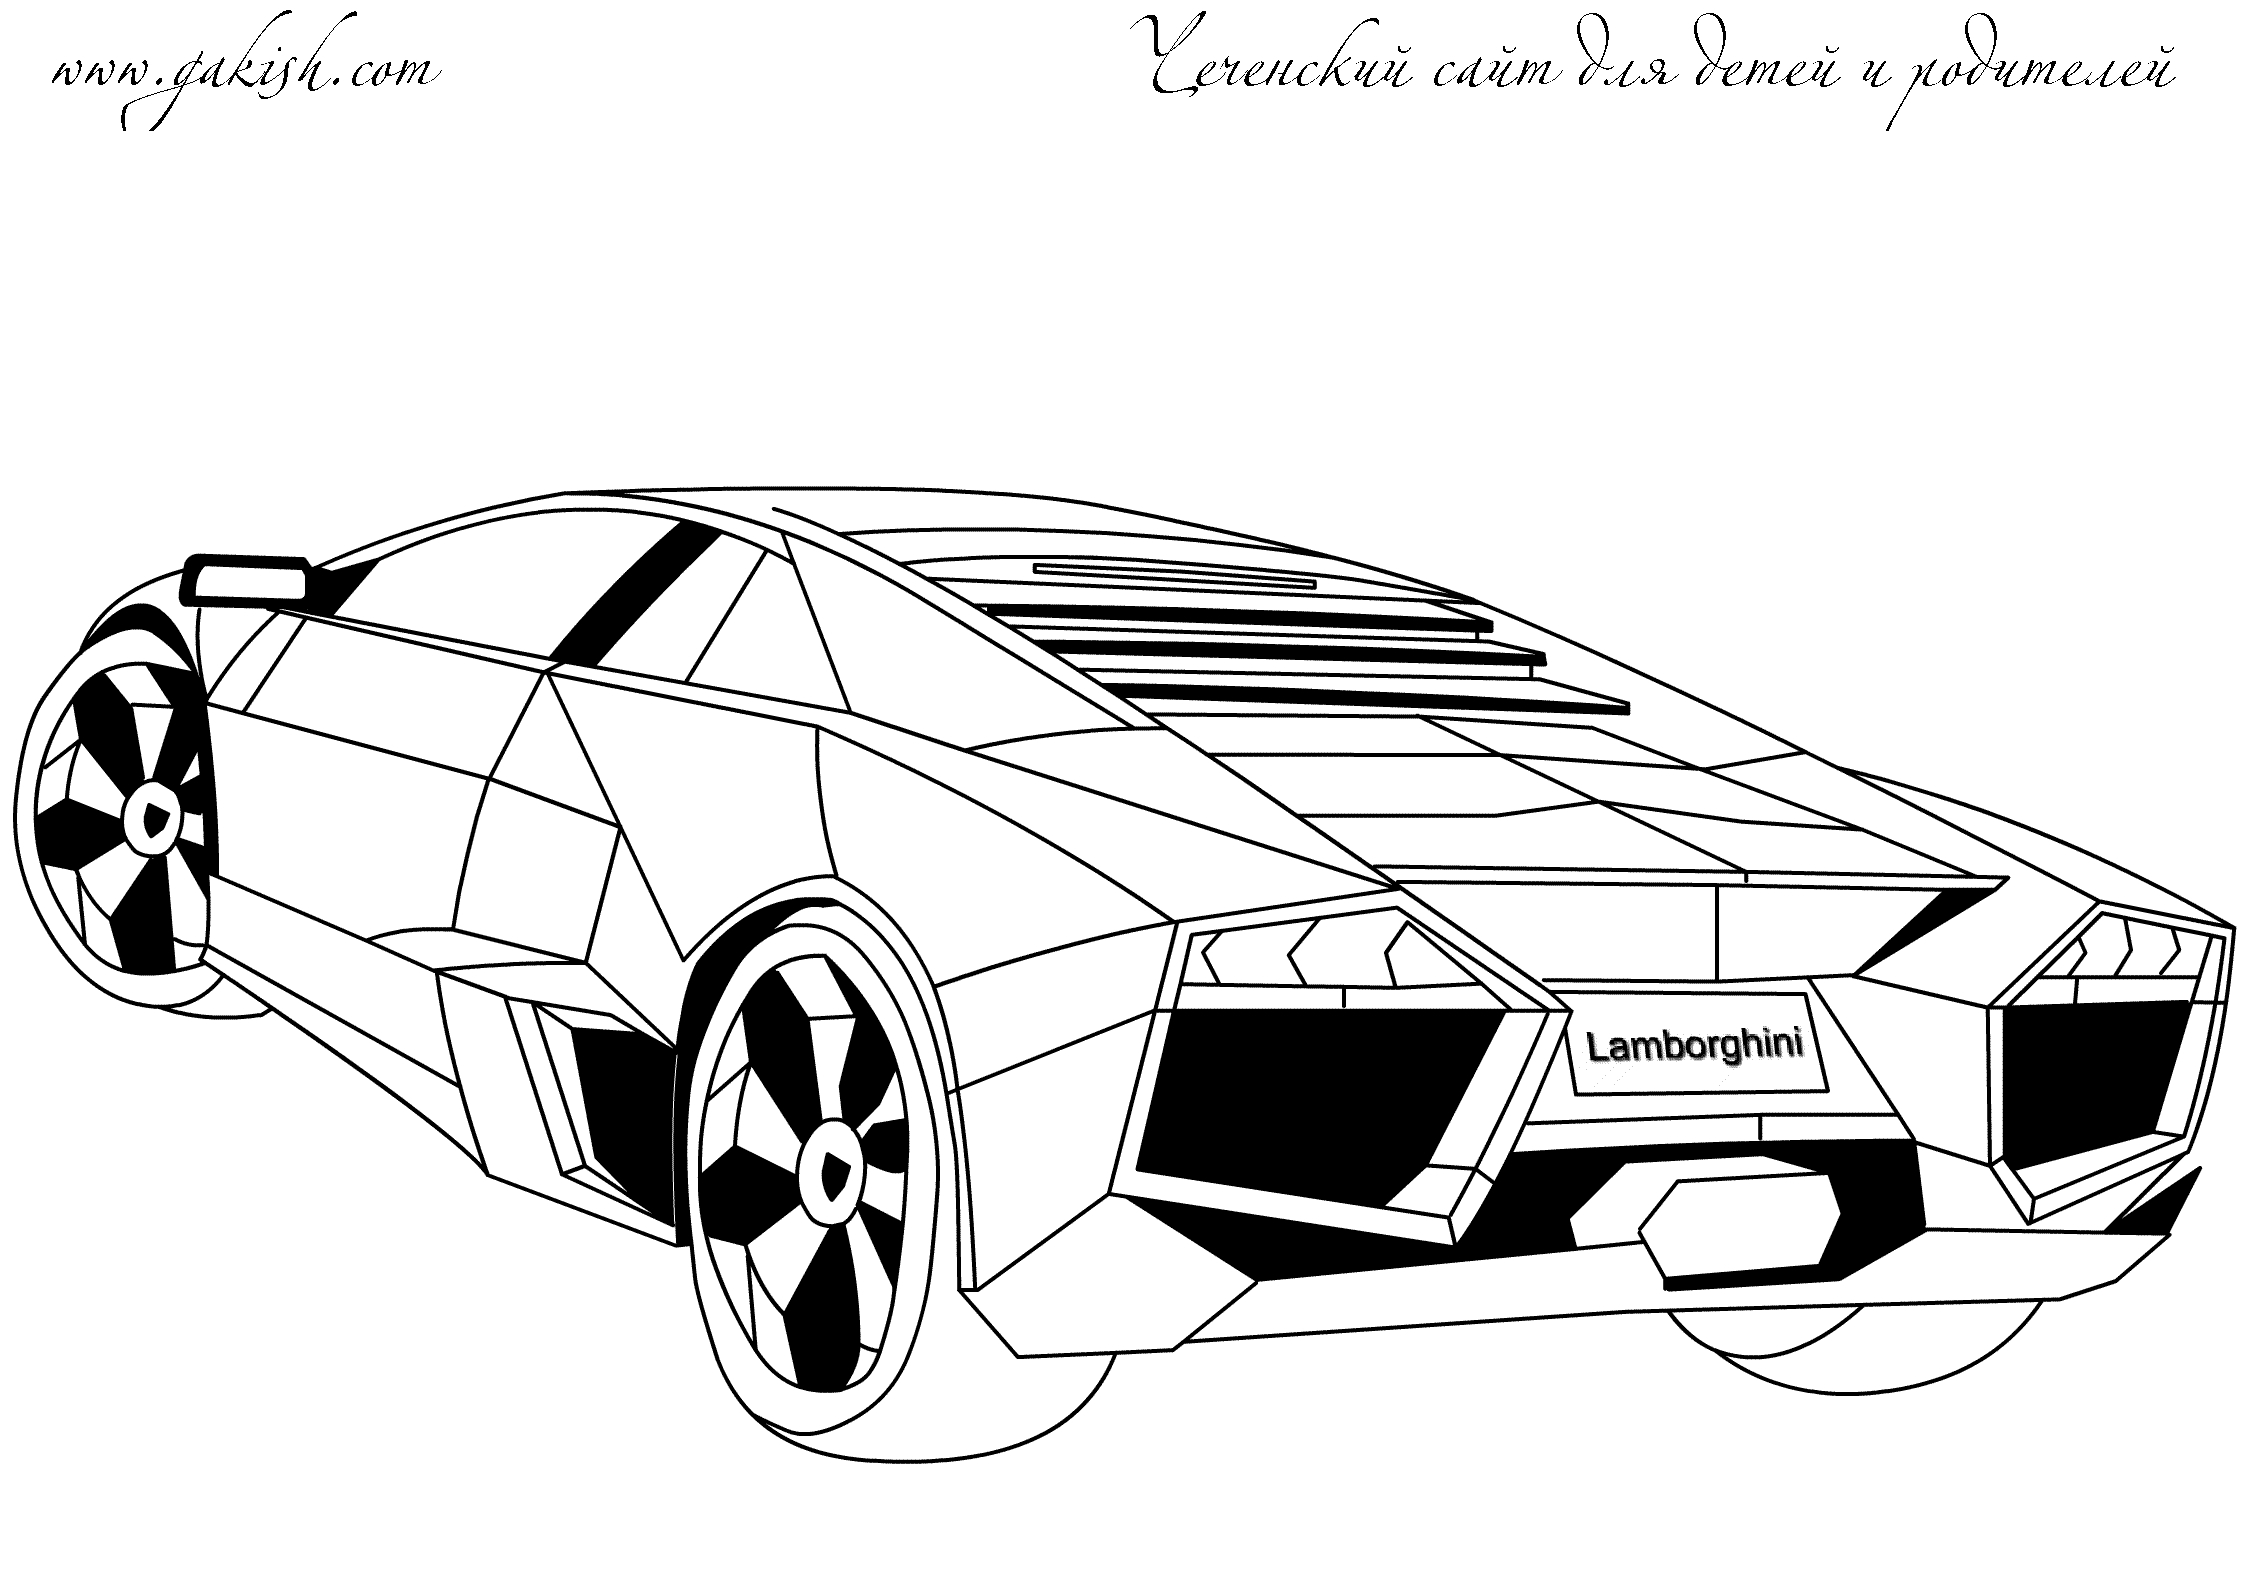 Lamborghini clipart colouring page Printable For Kids Printable Coloring